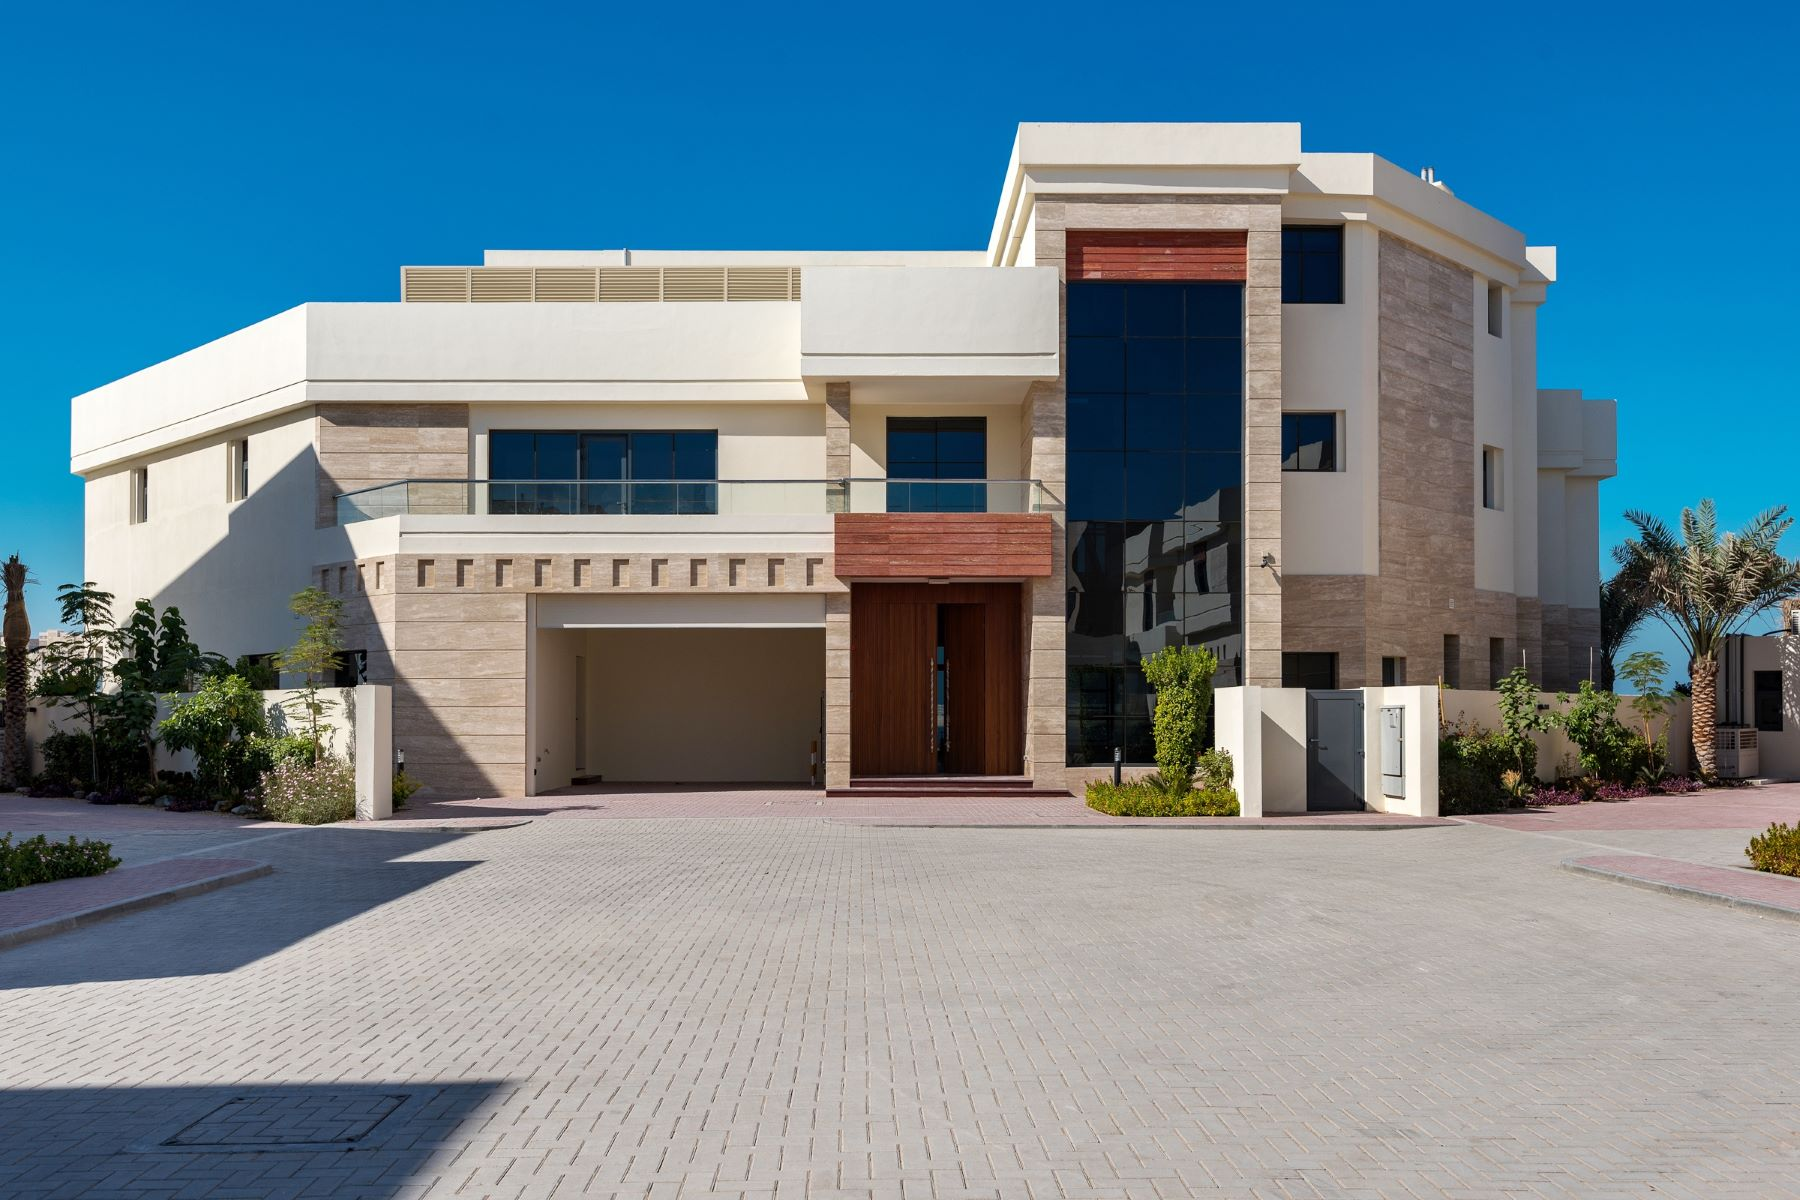 Property for Sale at Tip Location 6BR New Custom Built villa Signature Villas Palm Jumeirah Dubai, Dubai 12345 United Arab Emirates